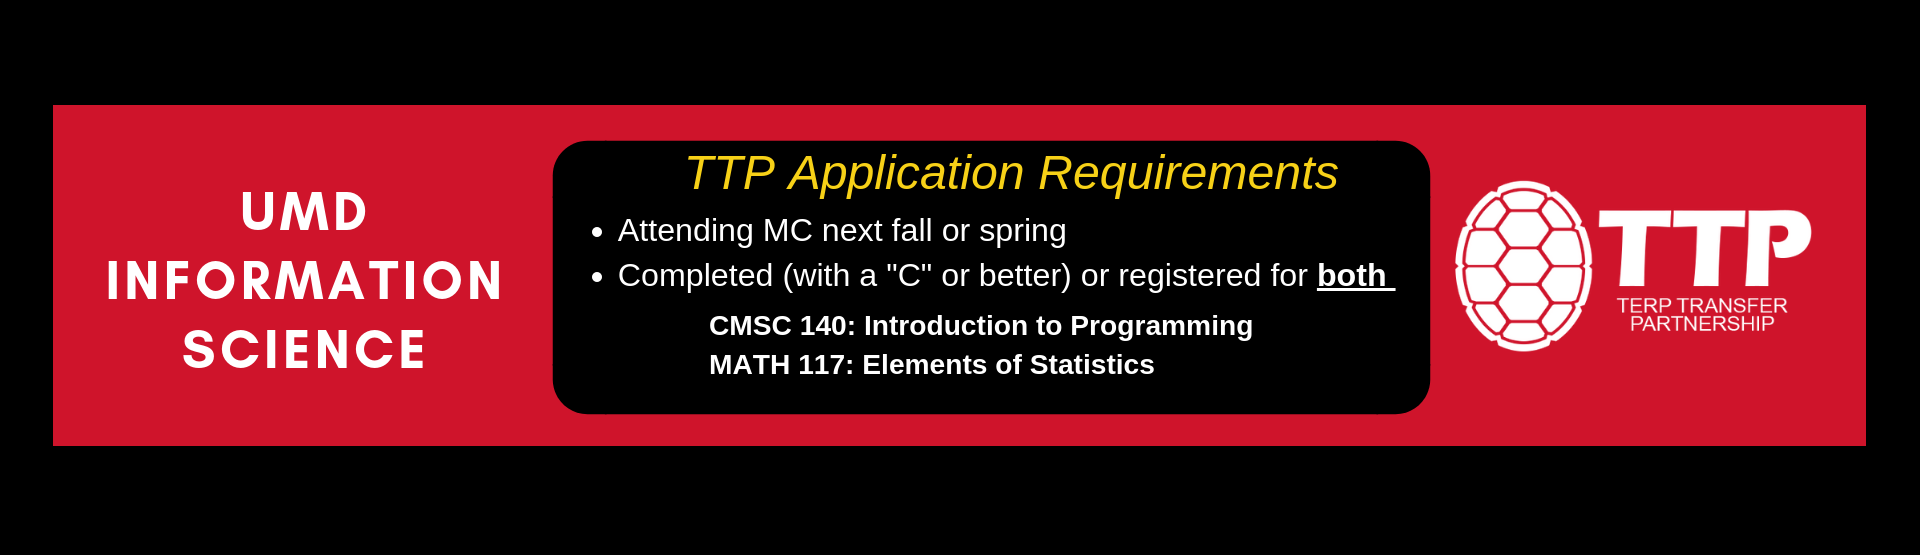 Terp Transfer Partnership (TTP) Program: Information Science App Requirements: Attending MC next fall, Registered for or completed CMSC 140 and MATH 117